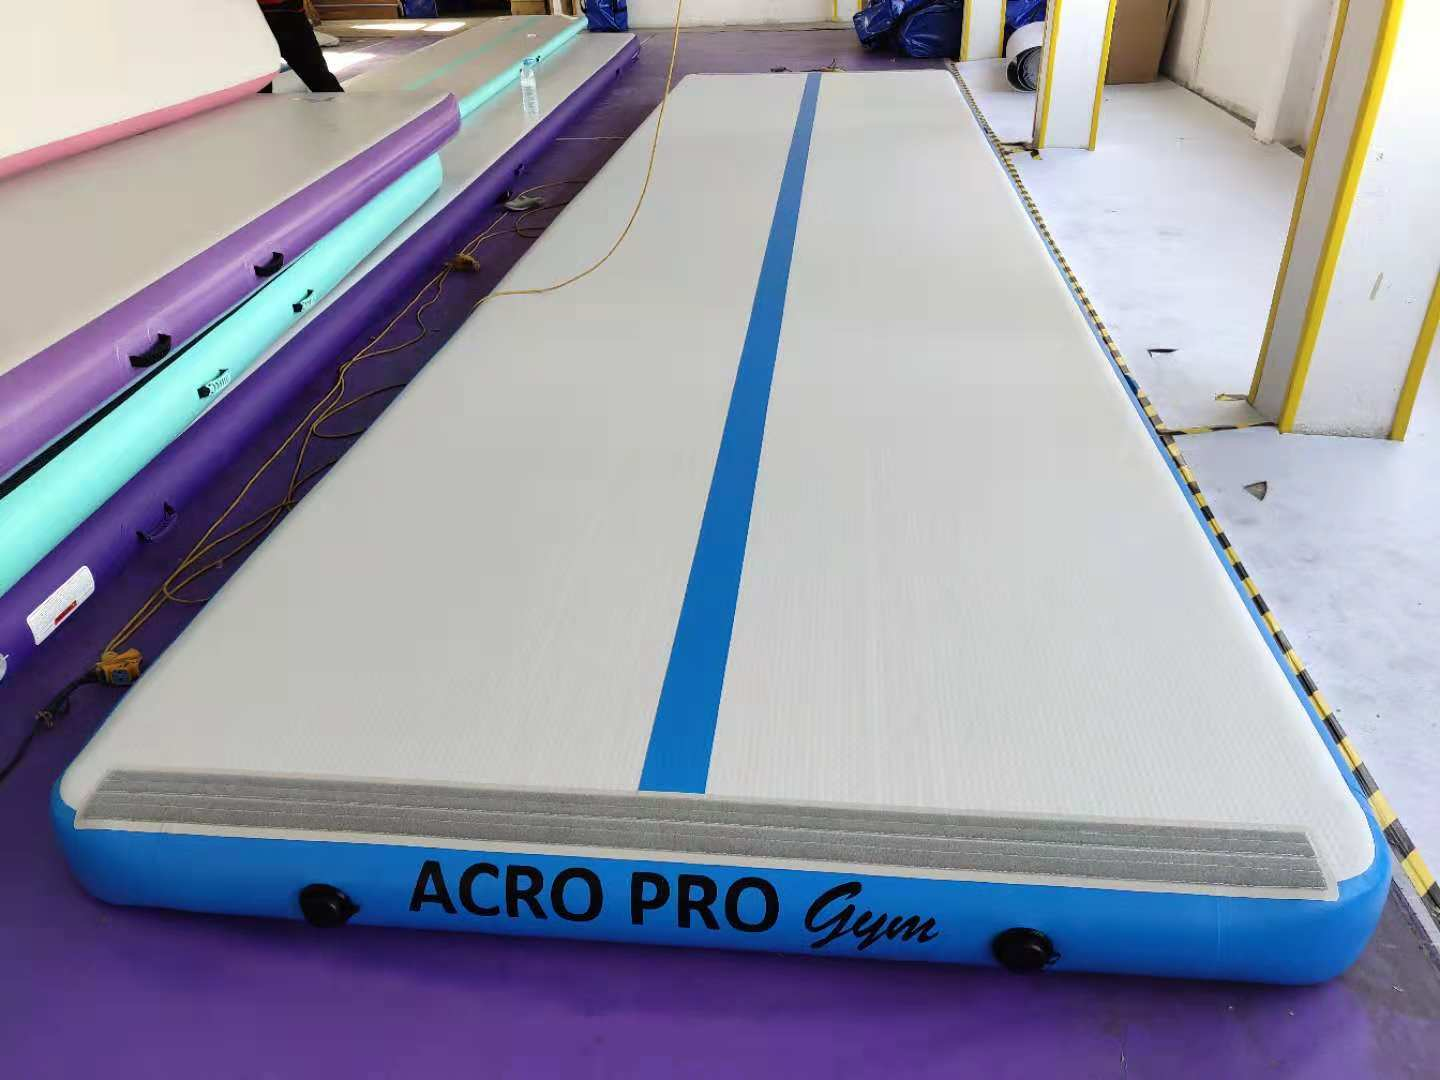 ACRO PRO Gym 8m-2m-20cm Air Track. XMAS STOCK